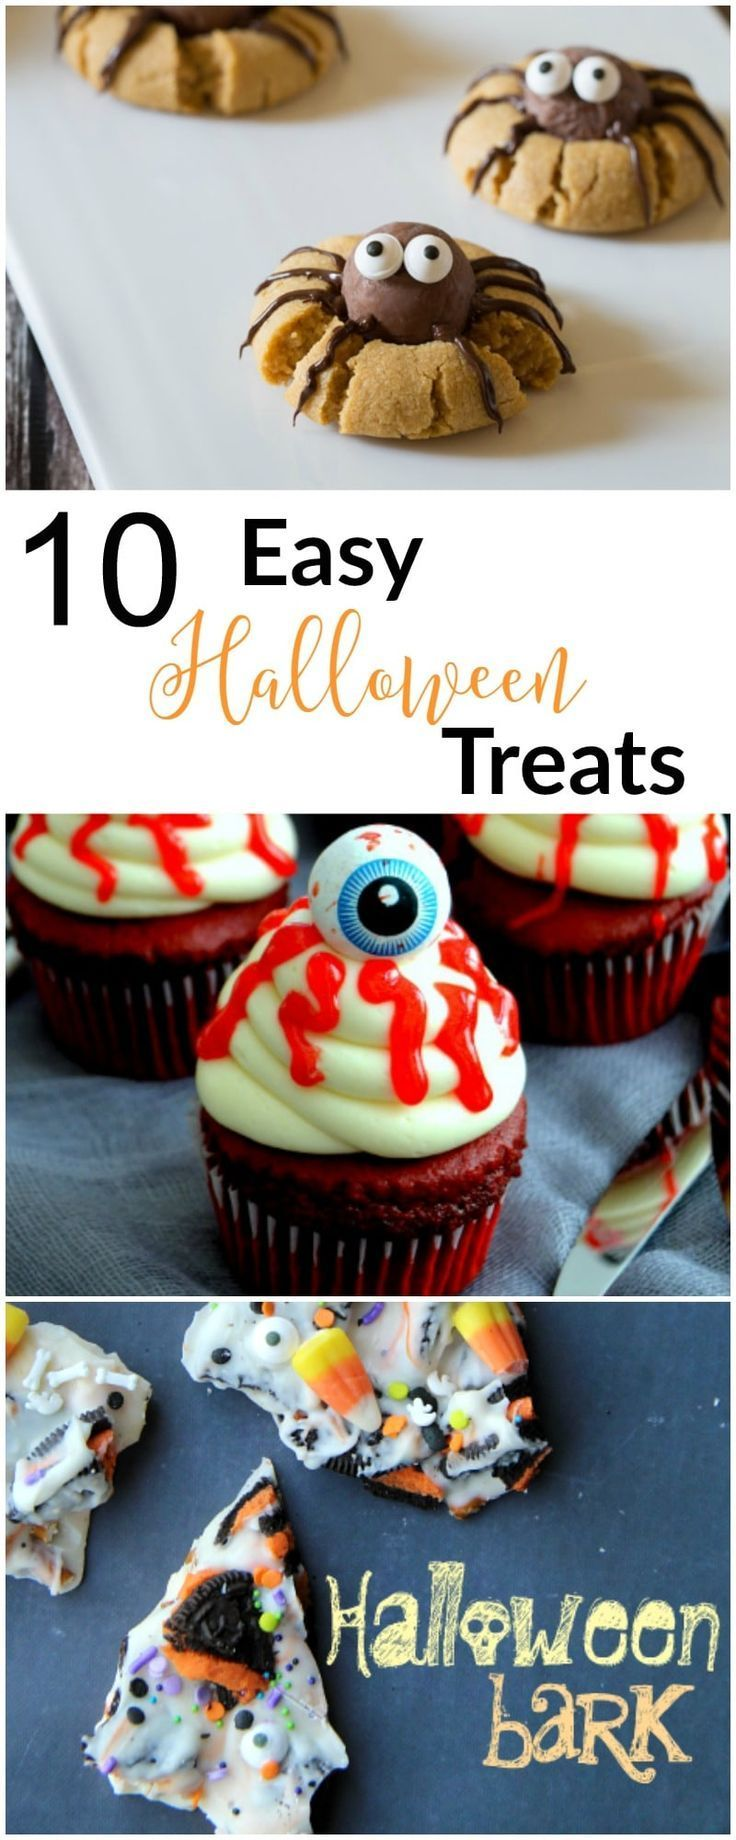 So many spooky ideas for Halloween desserts